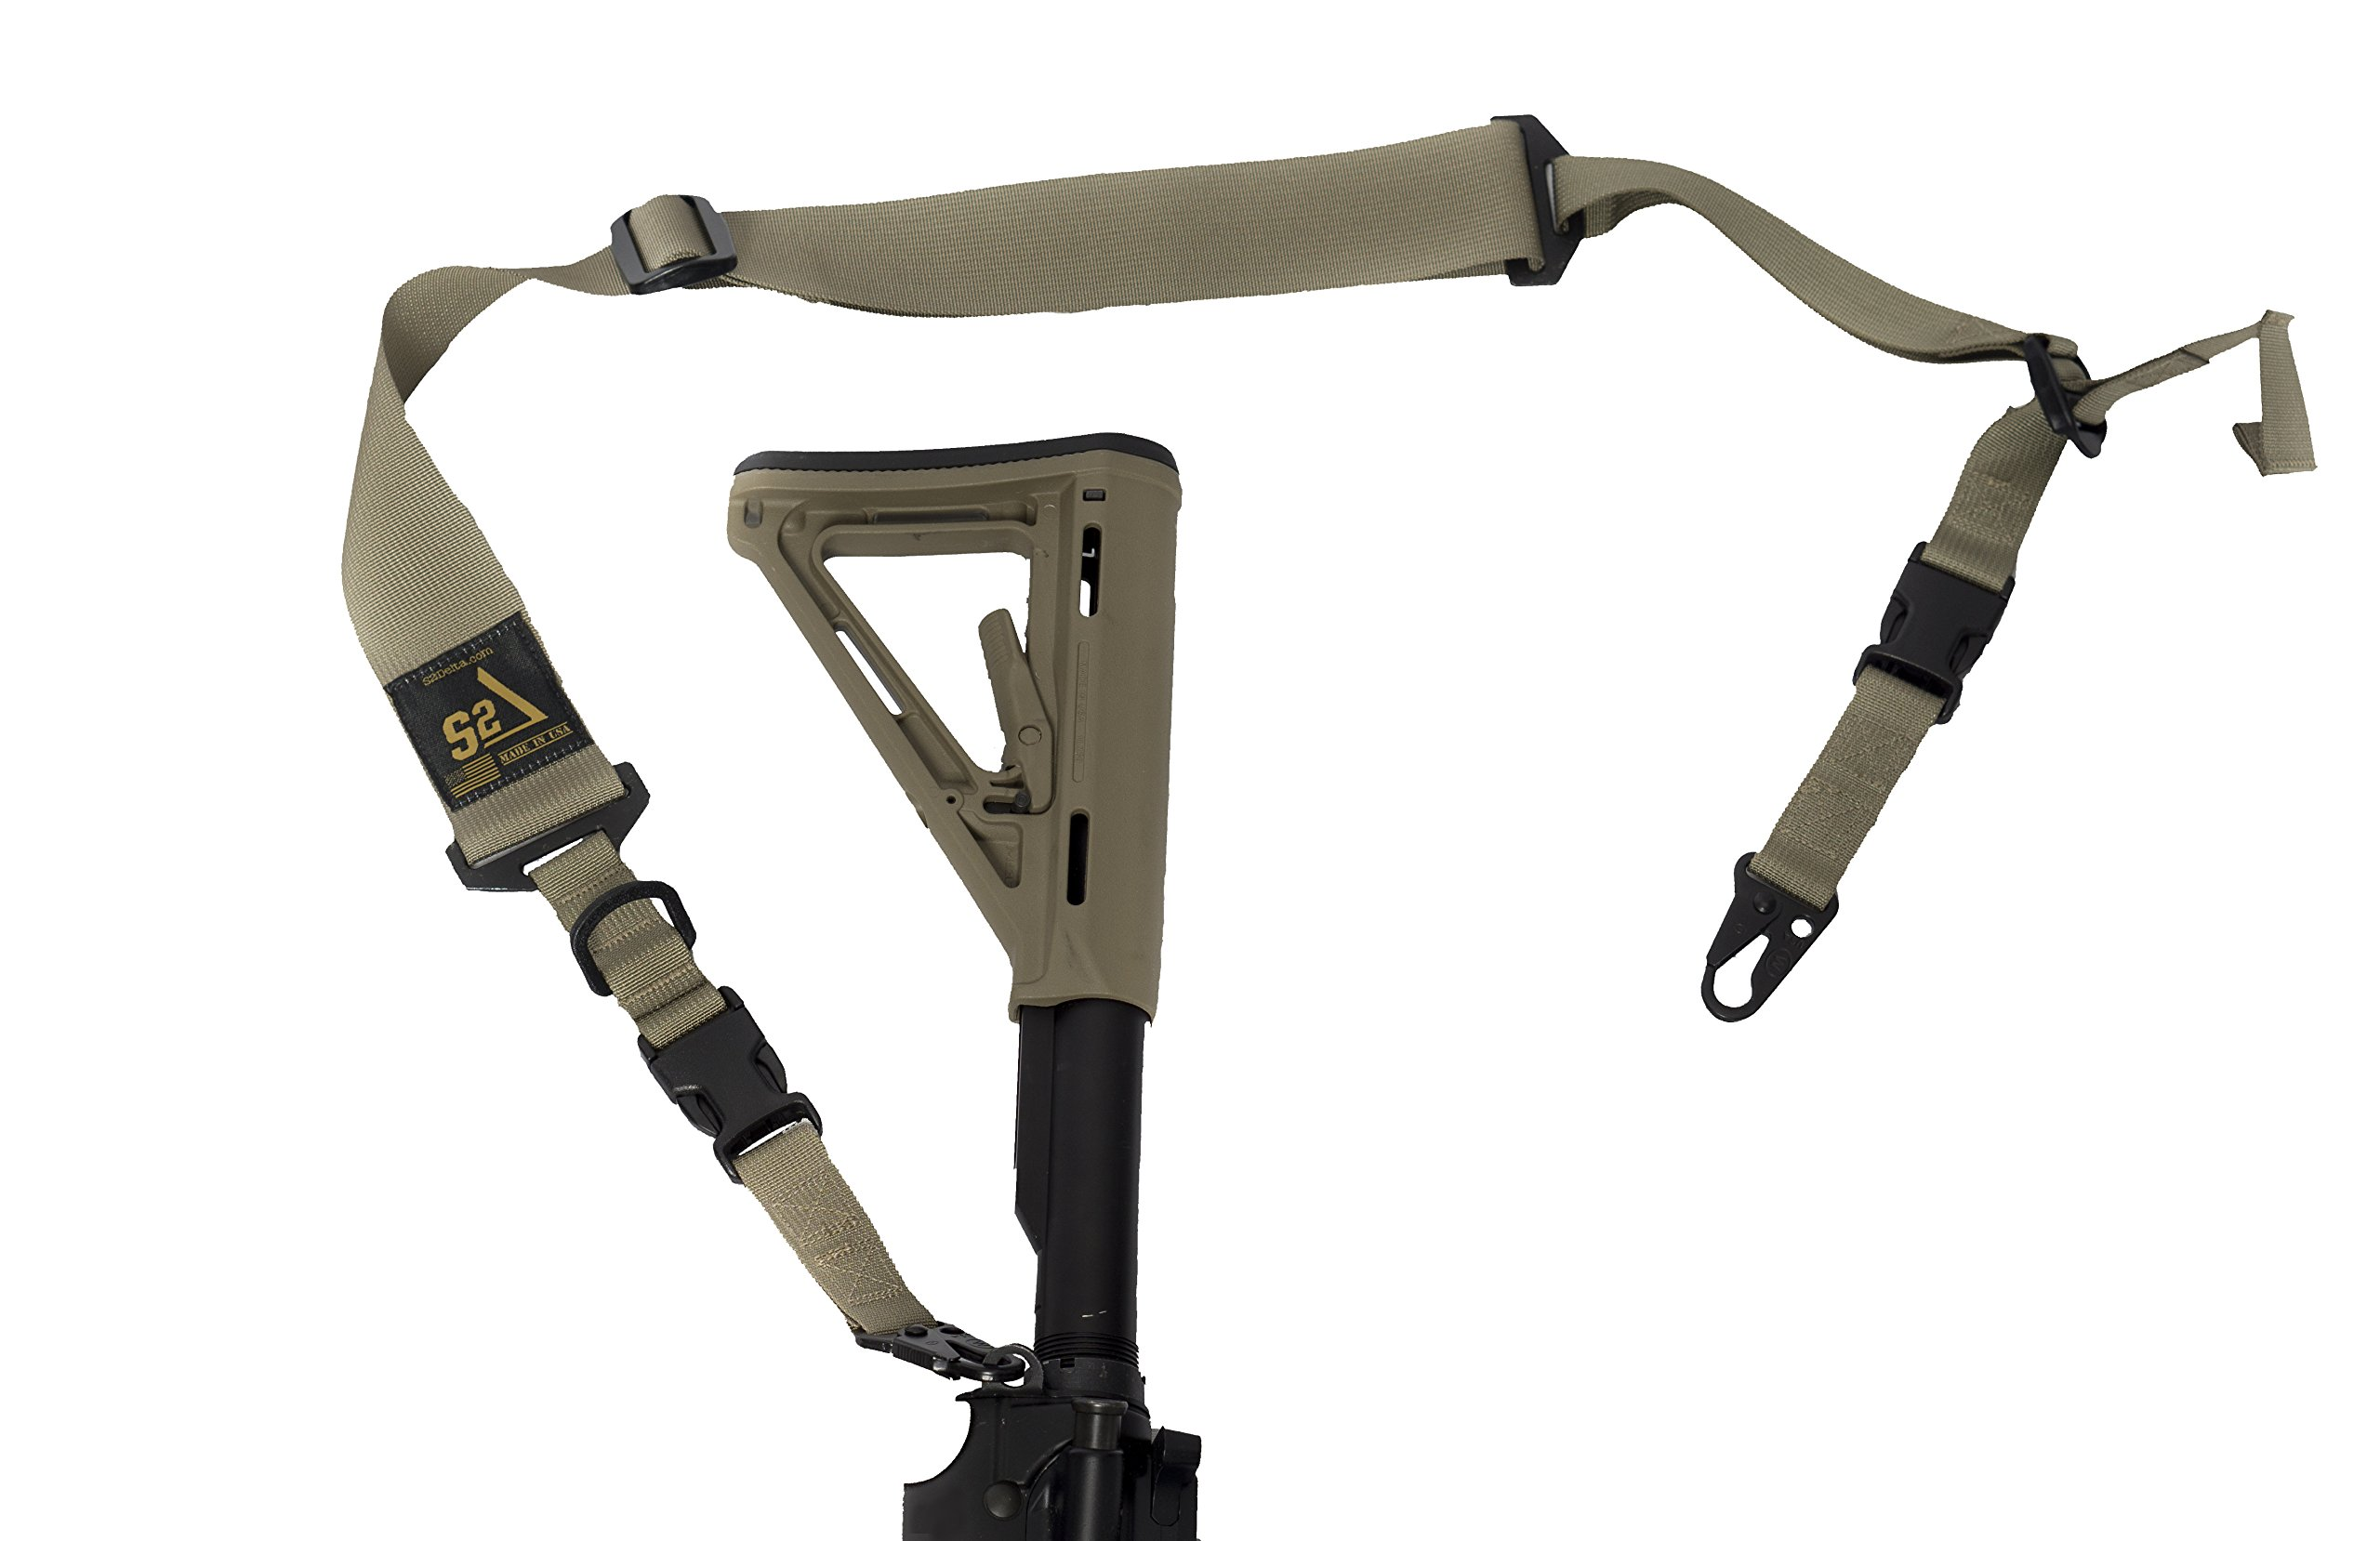 S2Delta - USA Made Premium 2 Point Rifle Sling, Quick Adjustment, Modular Attachment Connections, Comfortable 2'' Wide Shoulder Strap (Coyote Sling with C.L.A.S.H. Hooks, Full Sling) by S2Delta